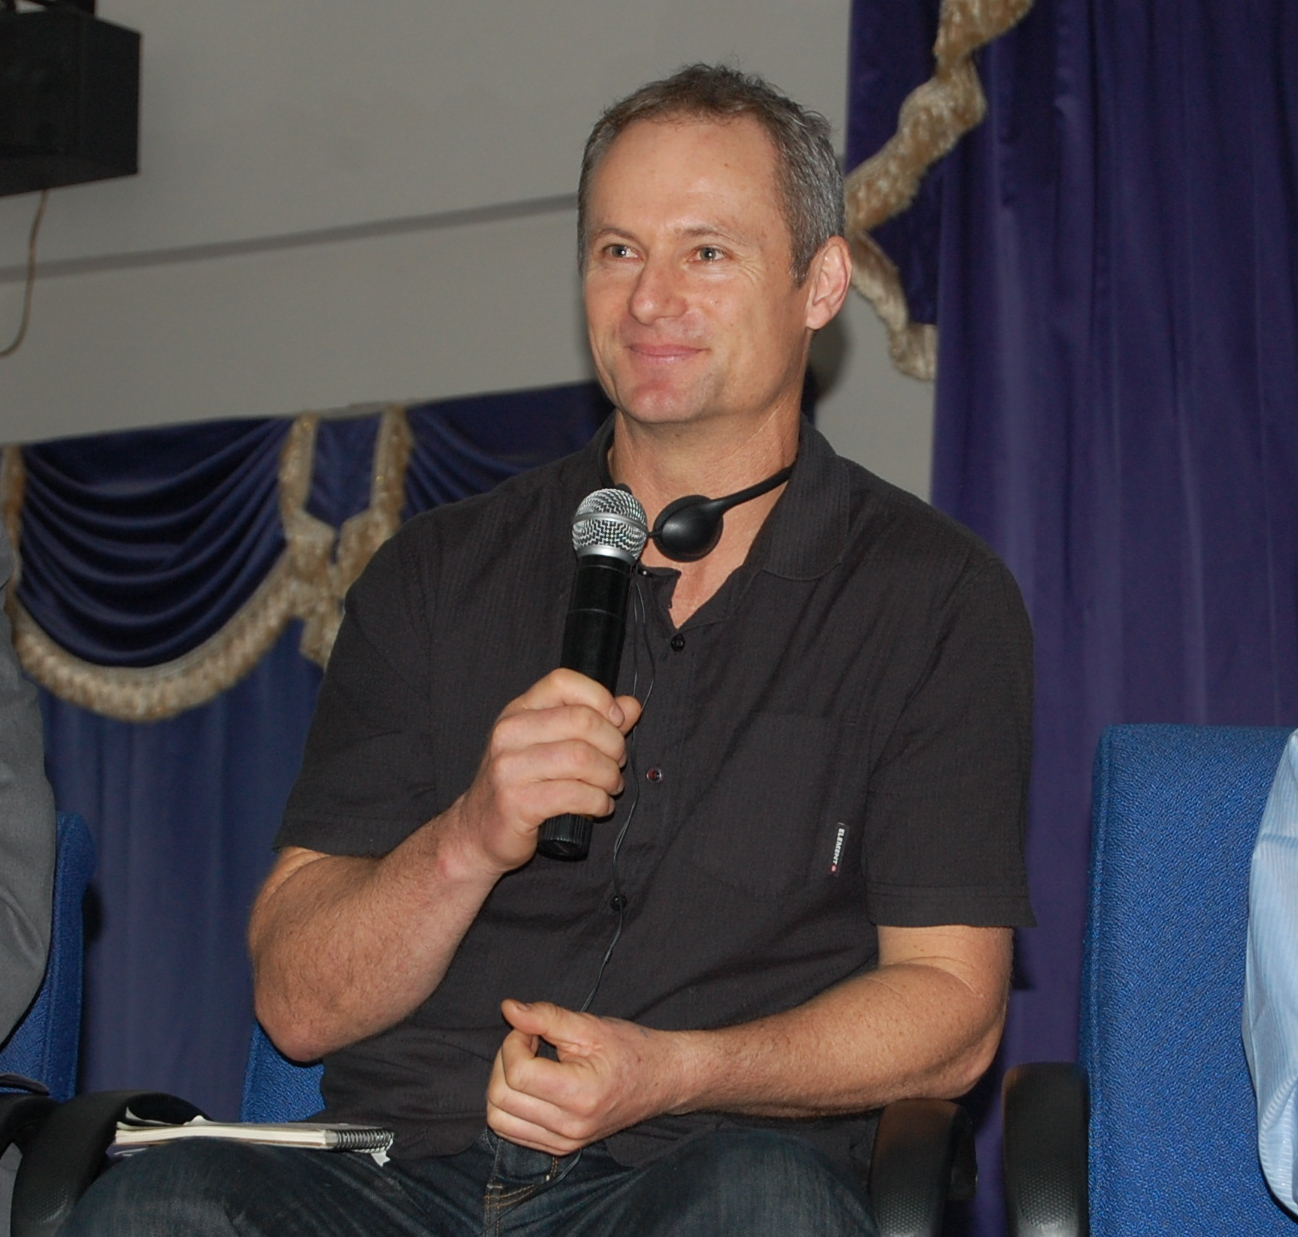 Olympian Rob Hamill at CJR public forum, 23 July 2010